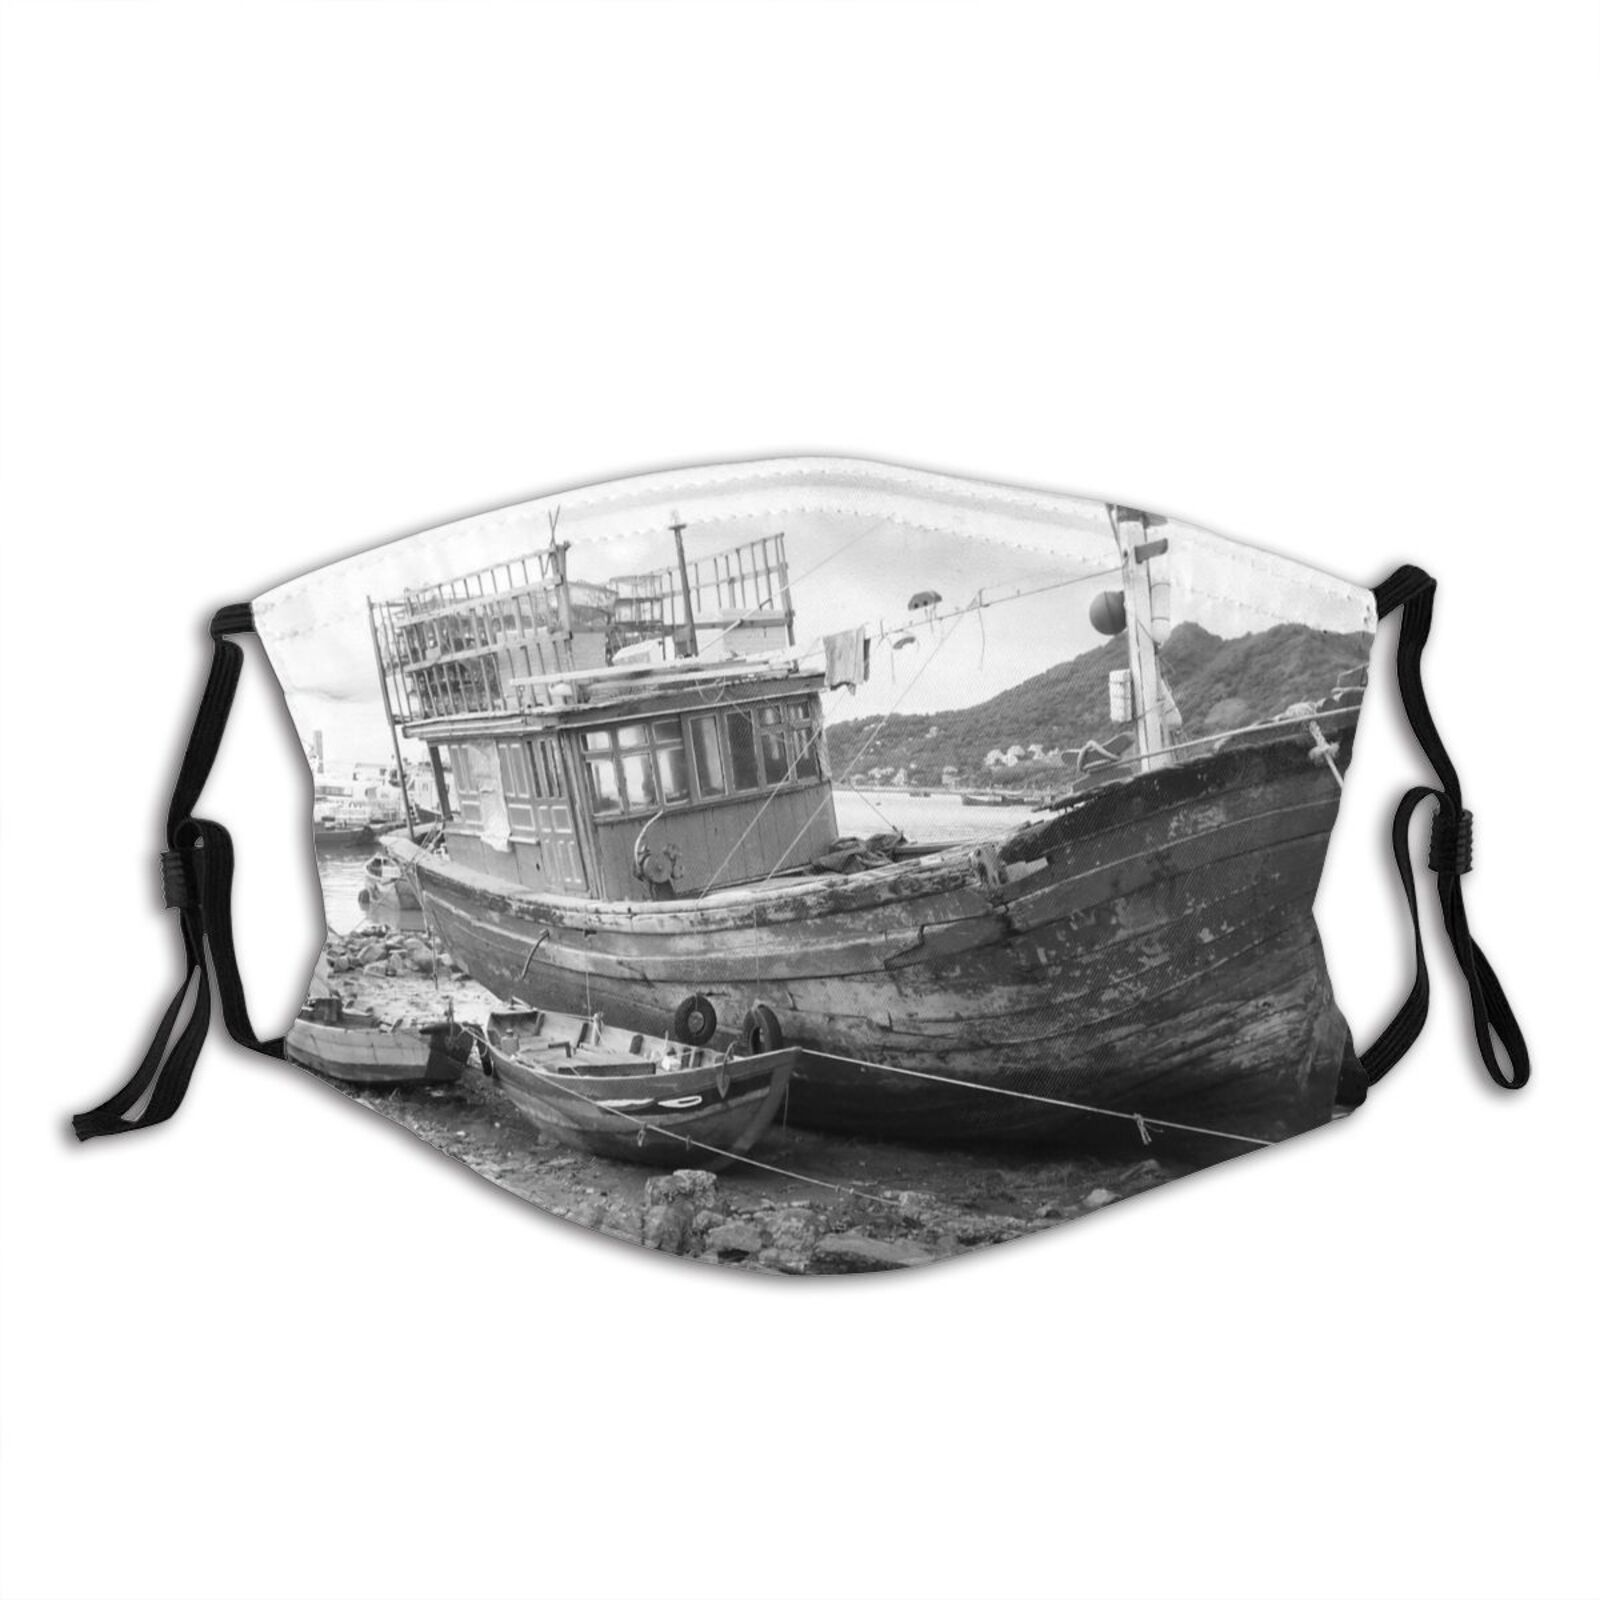 yanfind Watercraft Transportation Boats Vehicle Trawler Vessel Ship Boat Ships Shipwreck Fishing Dust Washable Reusable Filter and Reusable Mouth Warm Windproof Cotton Face